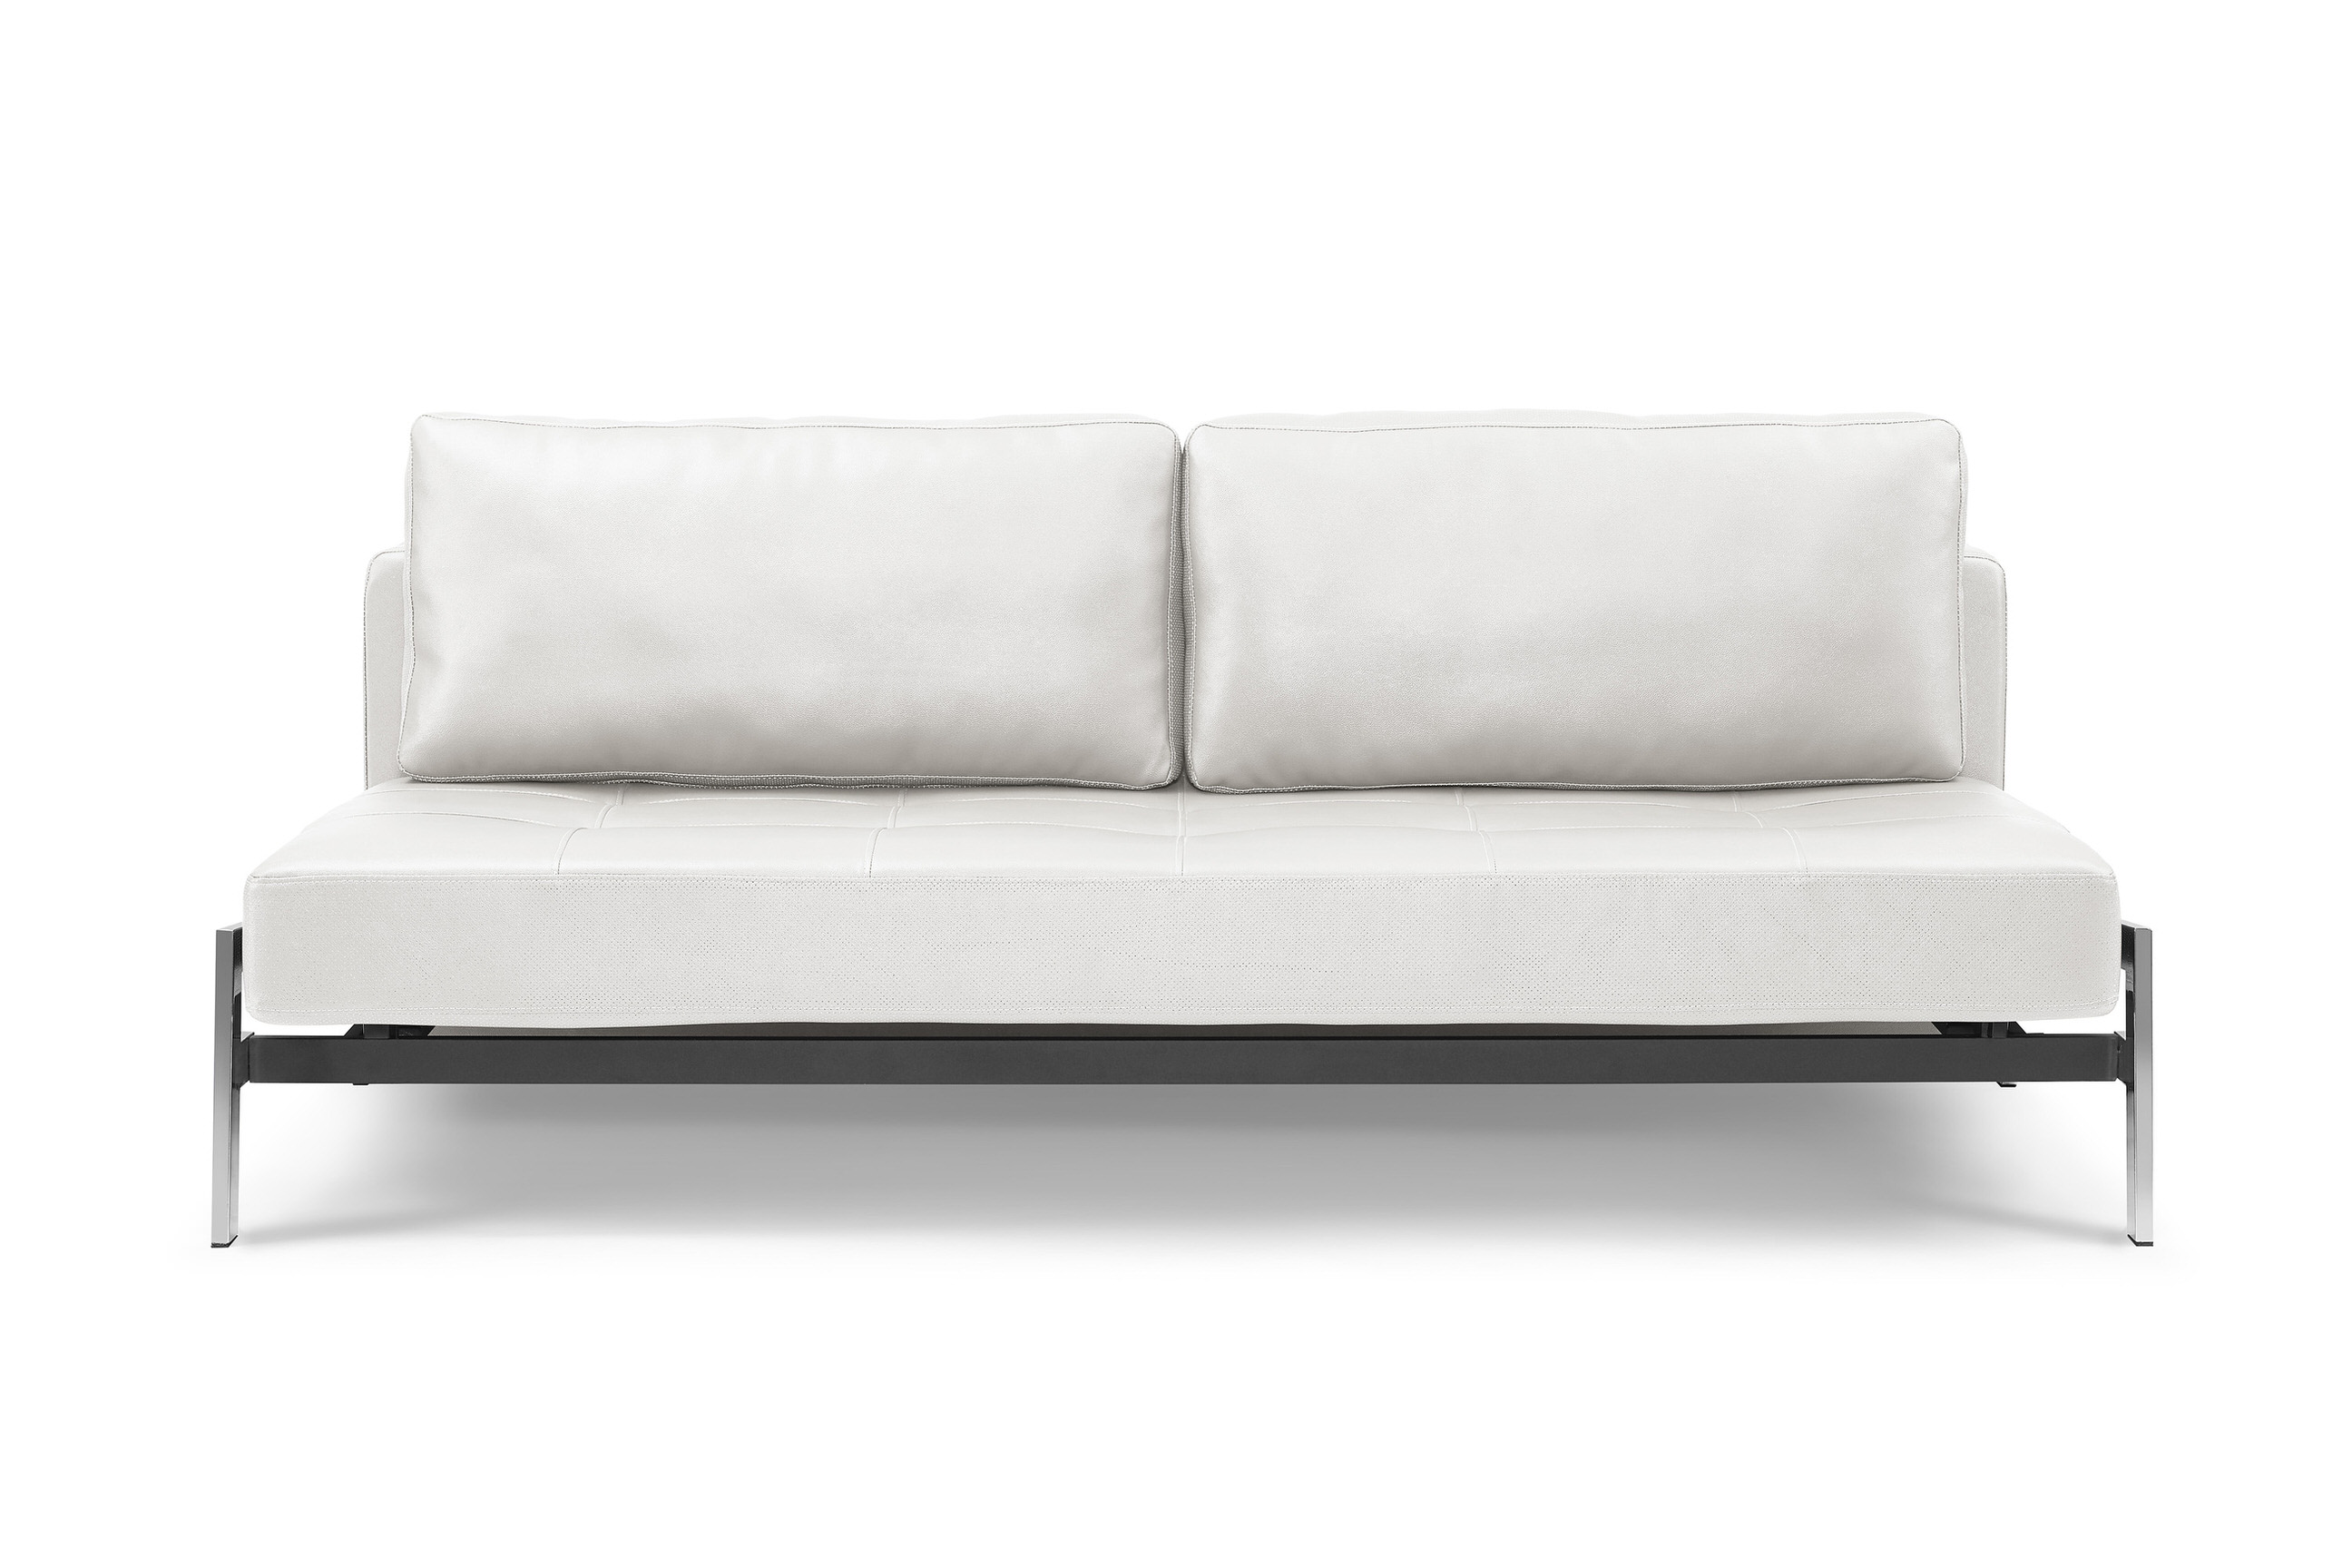 Peachy Borolo Aspen White Queen Leather Back Sofabed By Sealy Evergreenethics Interior Chair Design Evergreenethicsorg